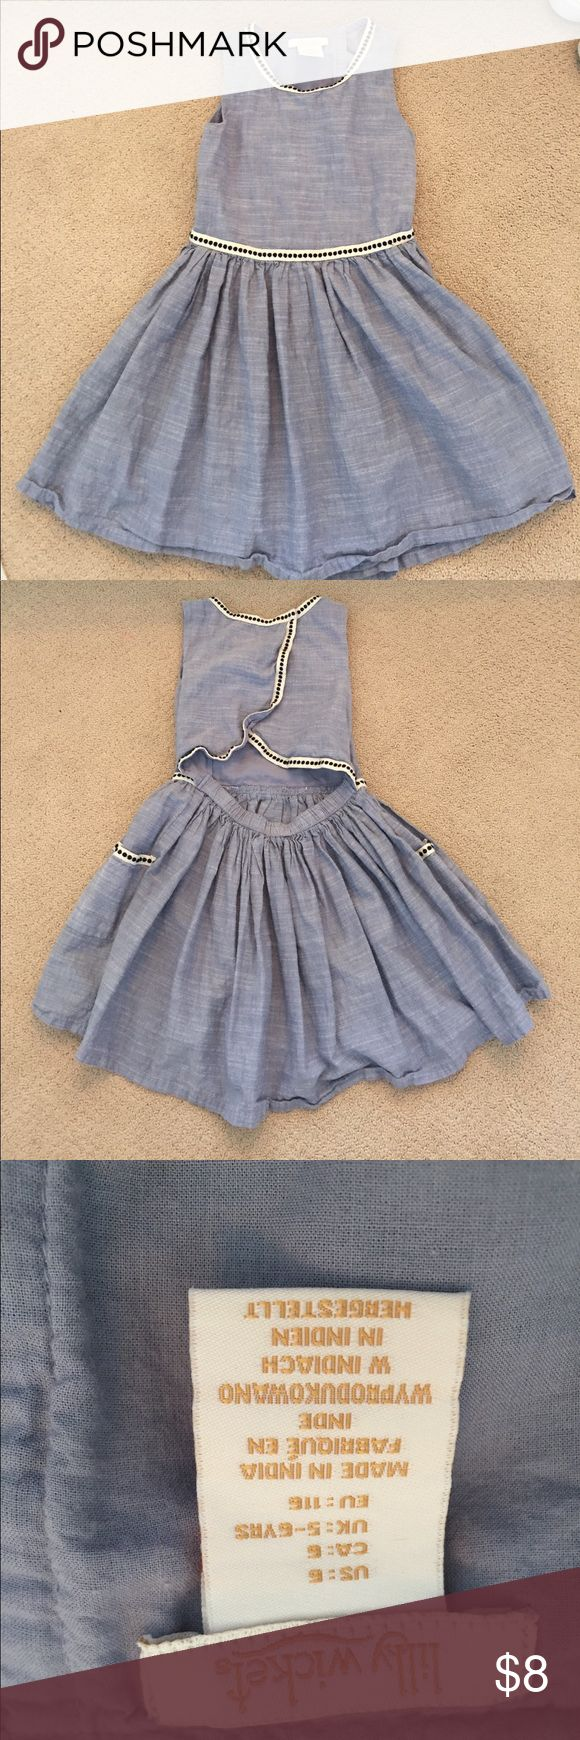 Girls Lily Wicket Dress This dress is a denim color with an open back and a pocket on each side. It was barely worn and is in great condition. Please feel free to ask for a lower price or comment any questions!👍💘 Dresses